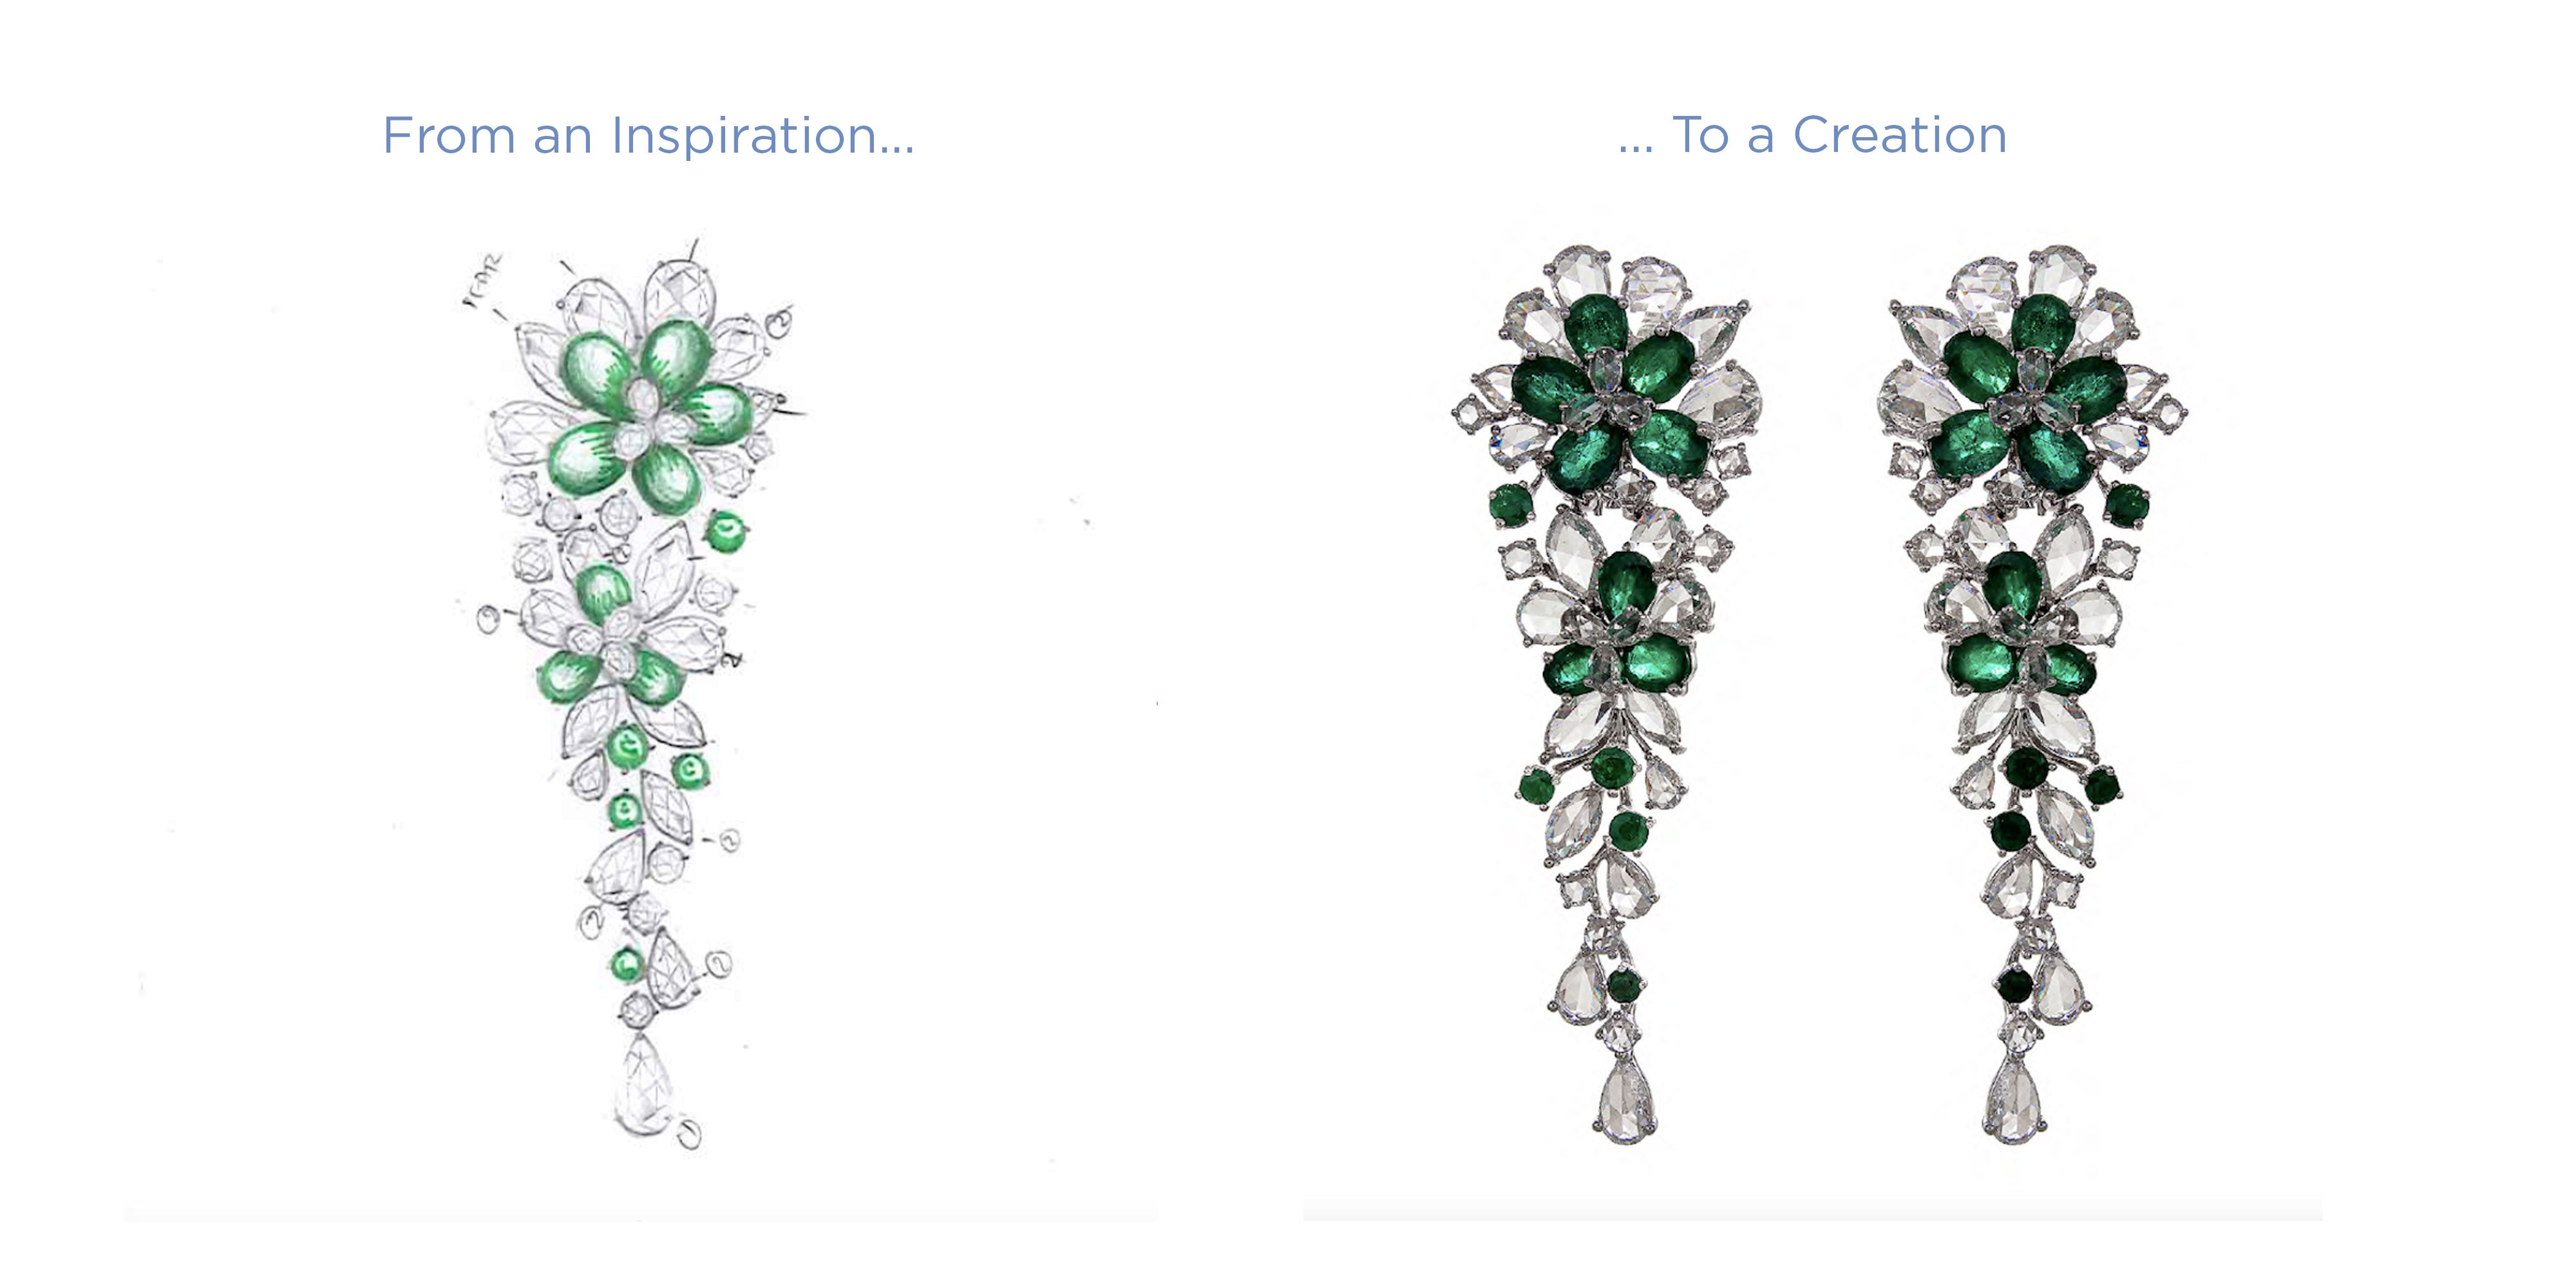 64Facets Fine Diamond and gemstone Jewelry Bespoke Creation Process